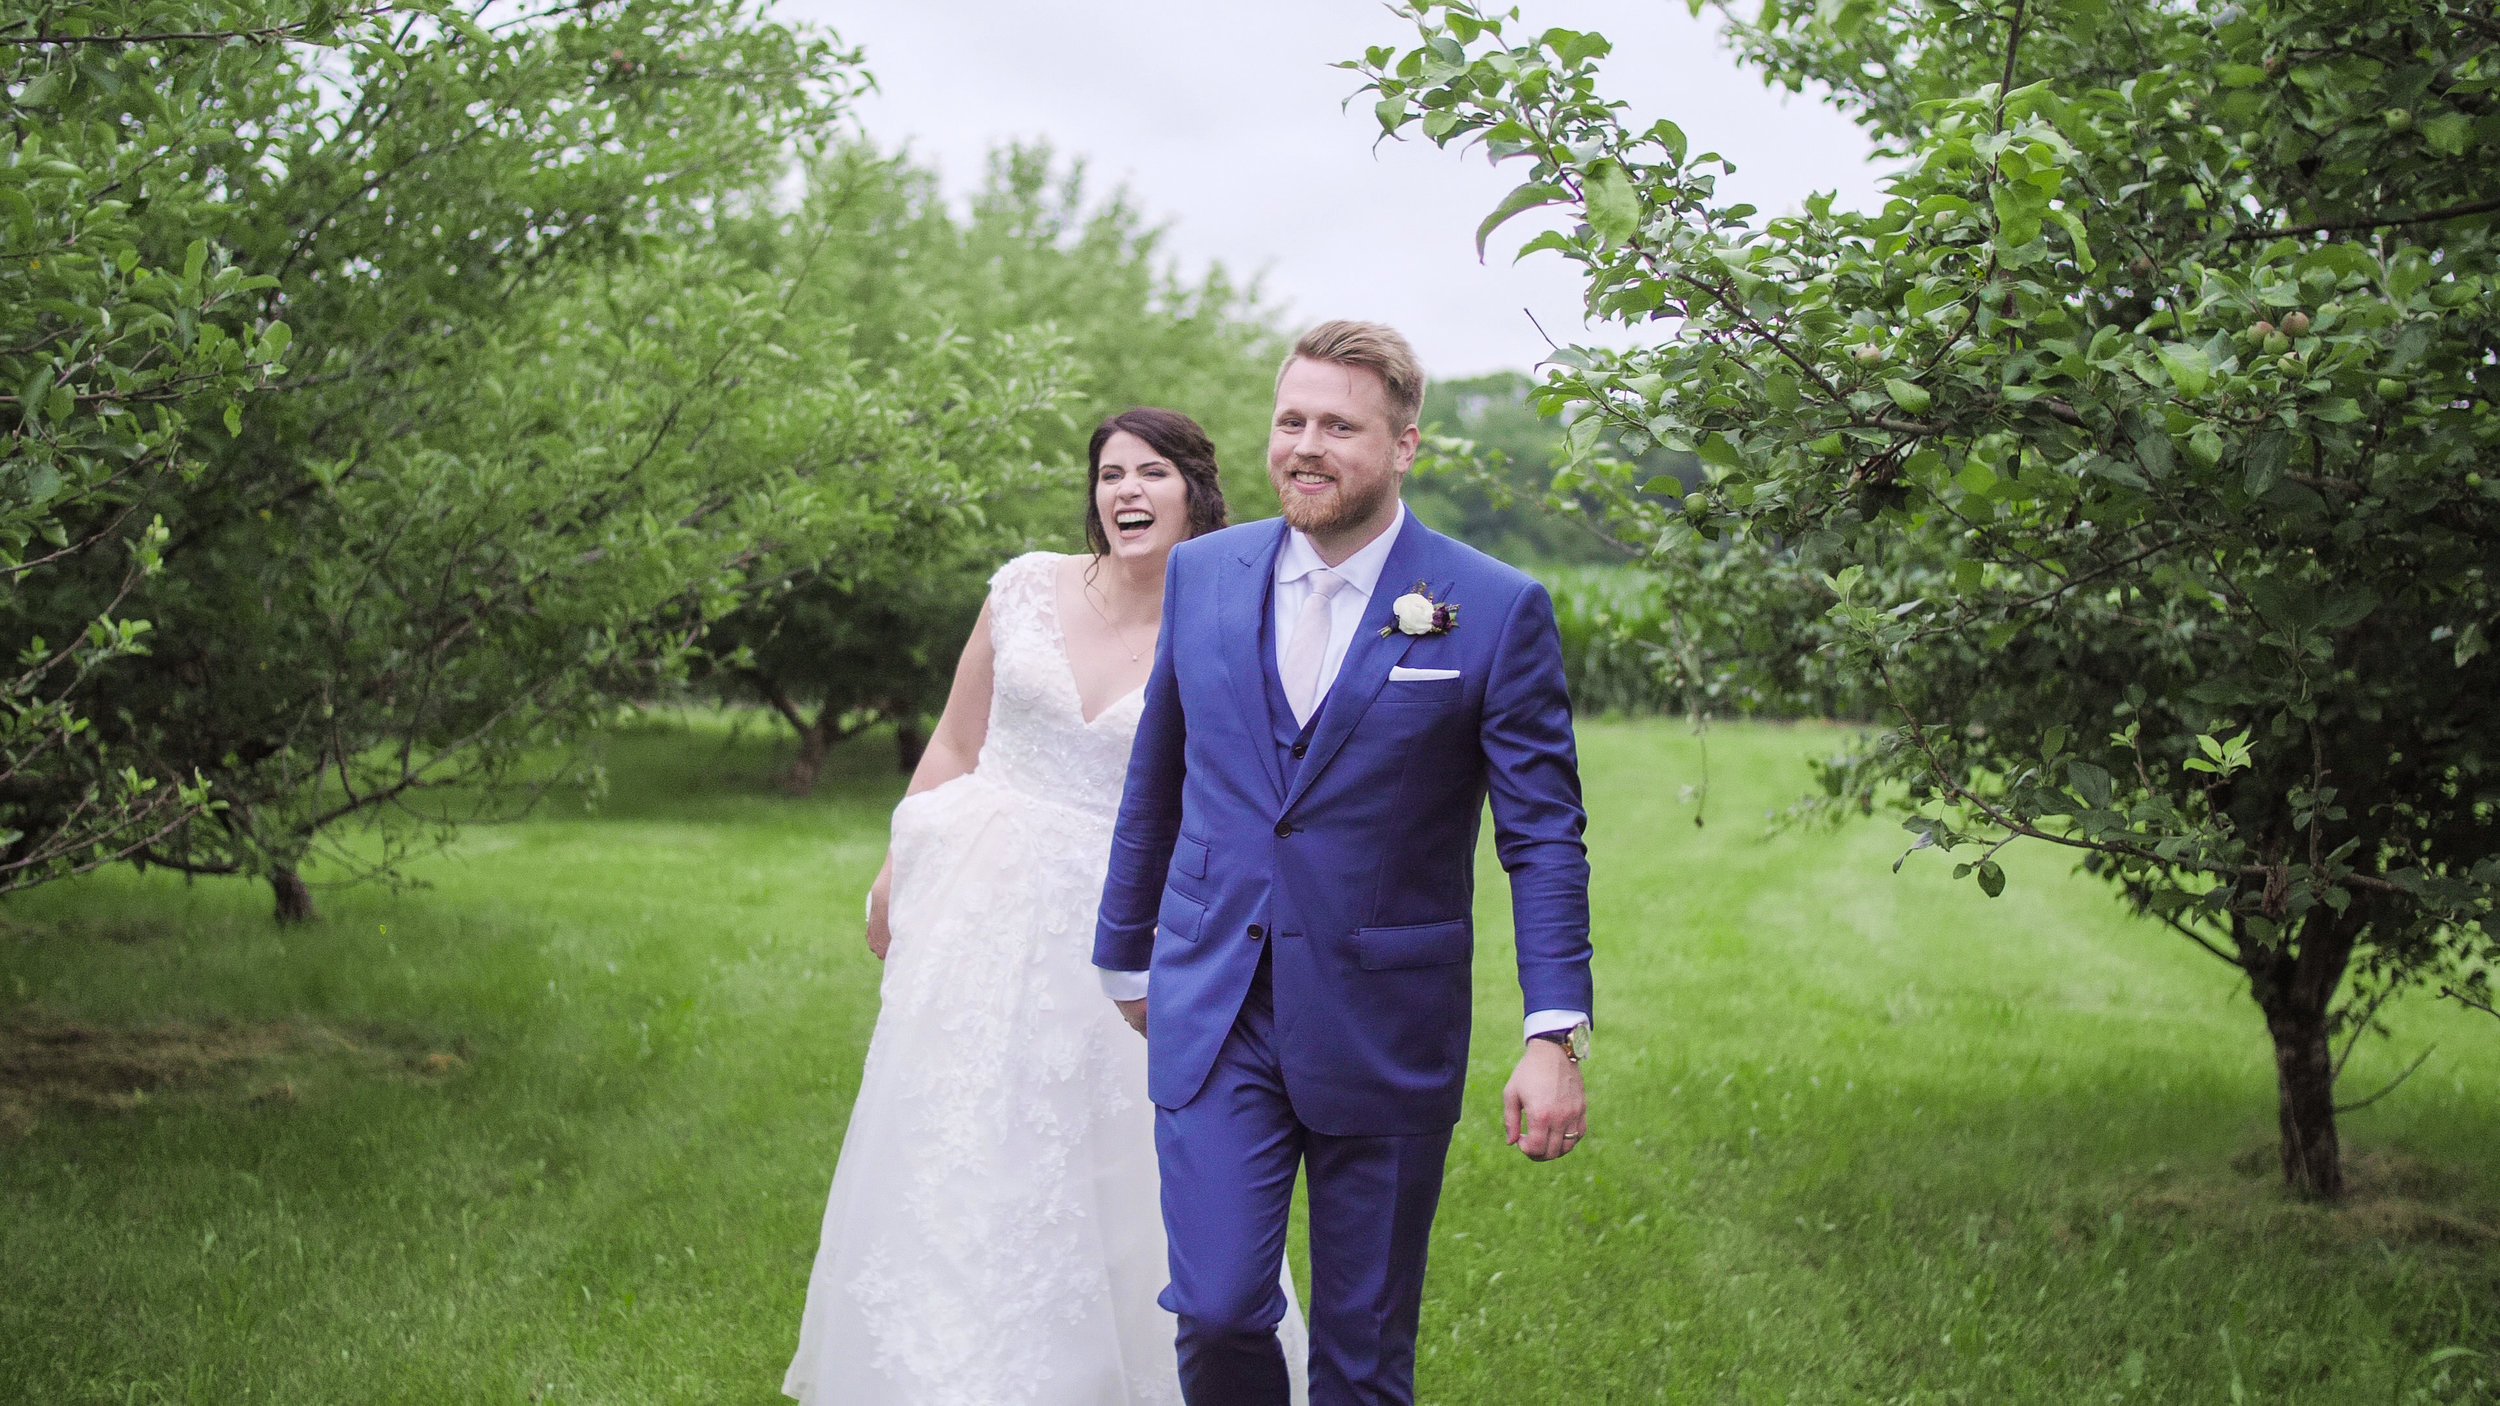 Lindsey & Ben - These two shared one of the most emotional ceremonies I've had the pleasure of filming.  The day of the wedding, it didn't just rain, it poured.  They were forced to move the ceremony into the reception space. The rain however didn't phase these two.  They were happy come rain or shine to vow their love to each other.